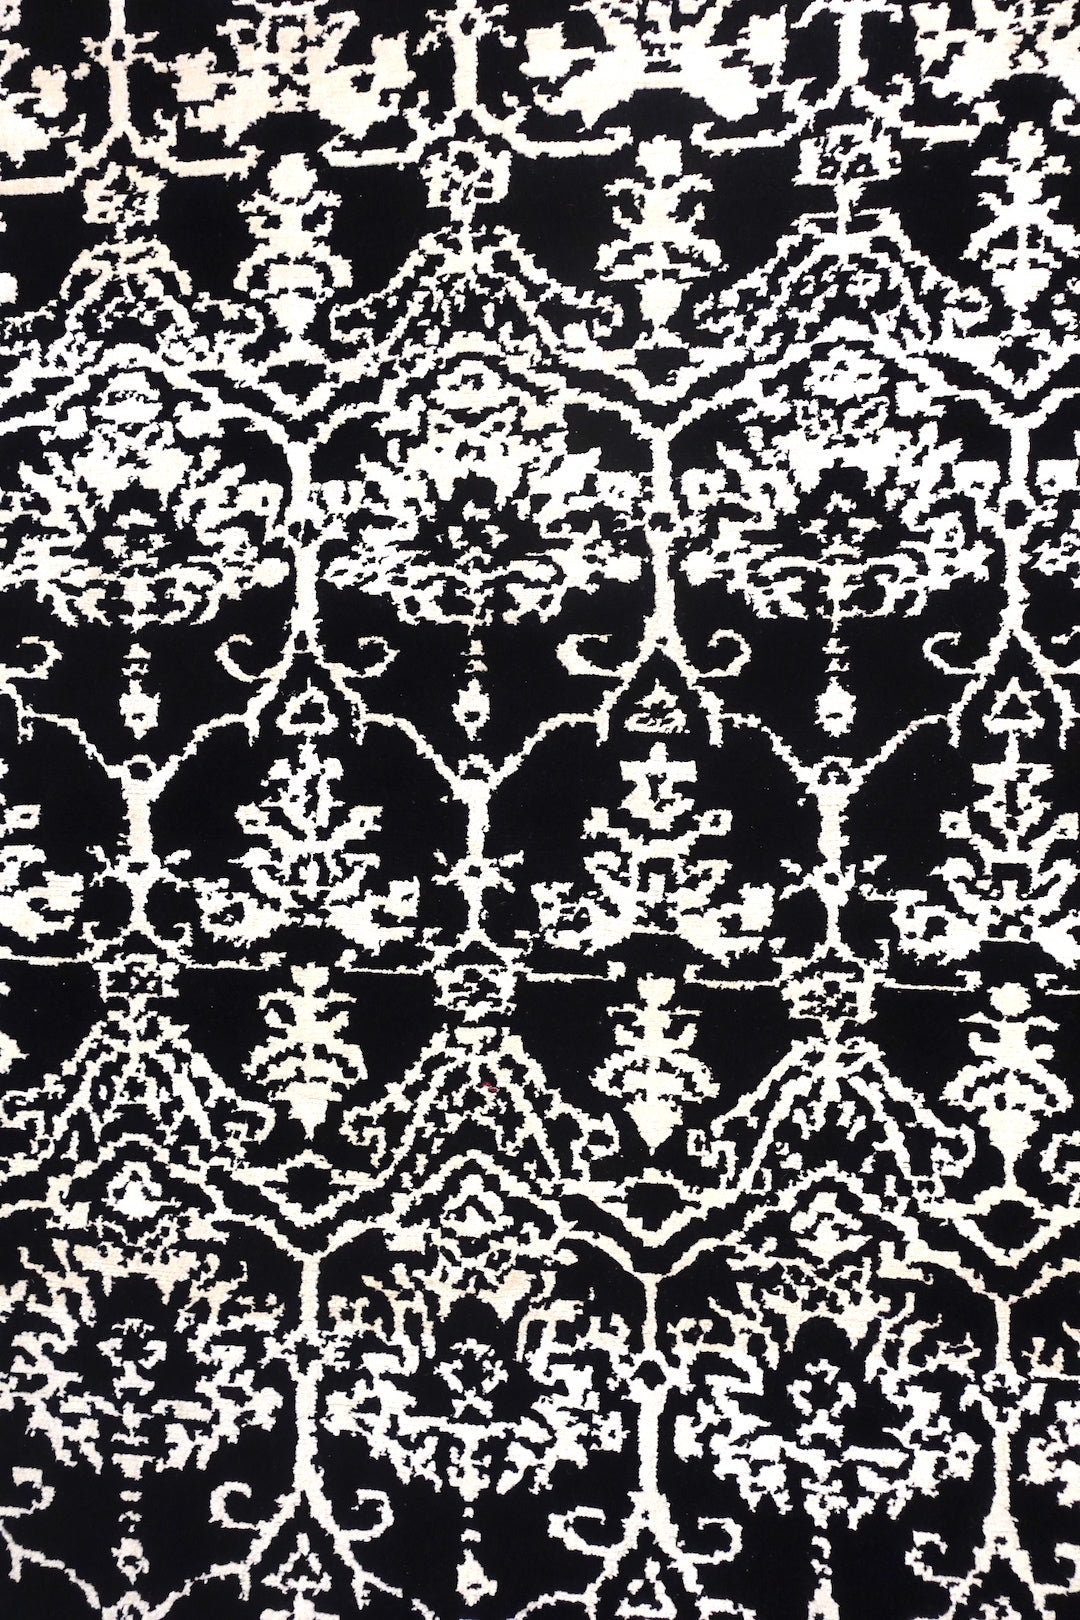 A 4 by 6 feet rug in black and white floral pattern.